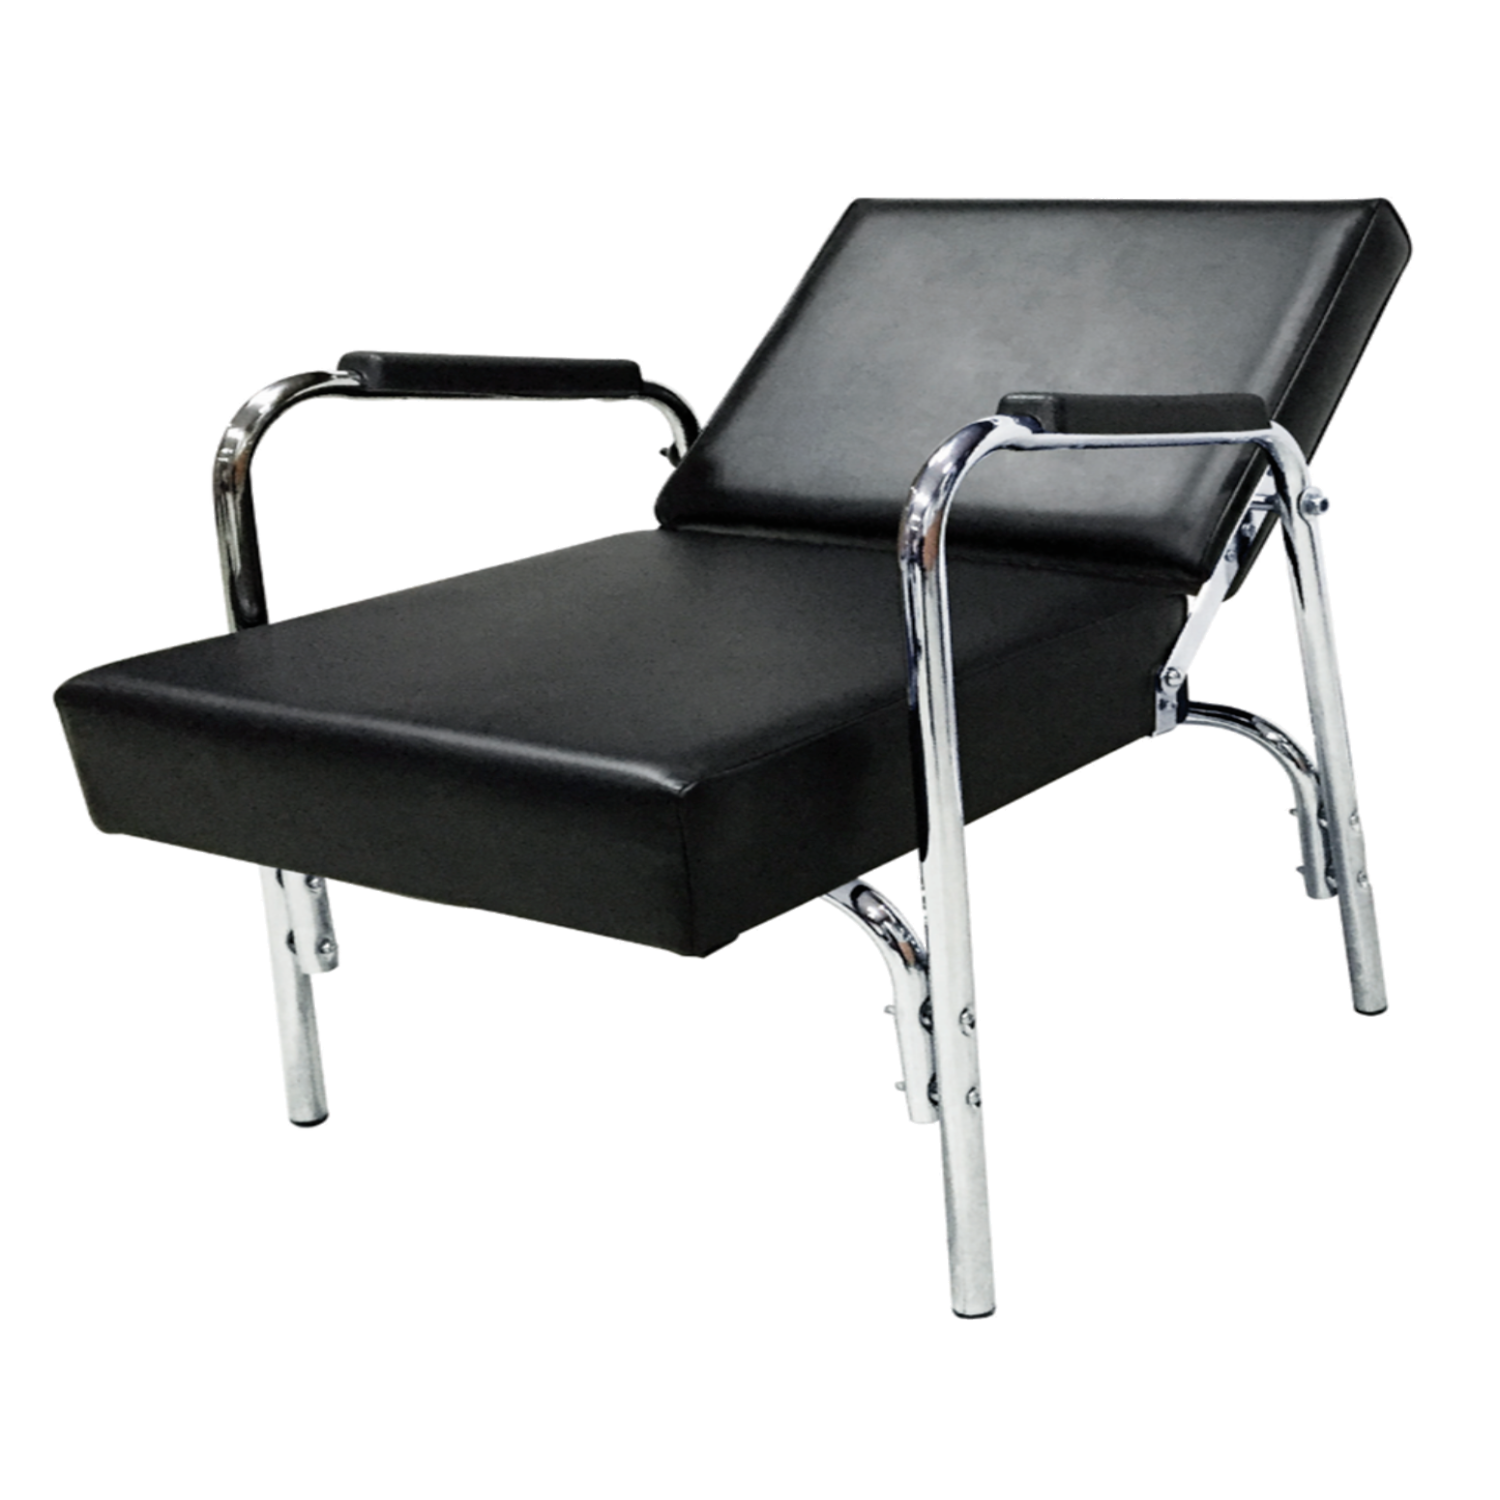 PureSana Auto Recline Shampoo Chair